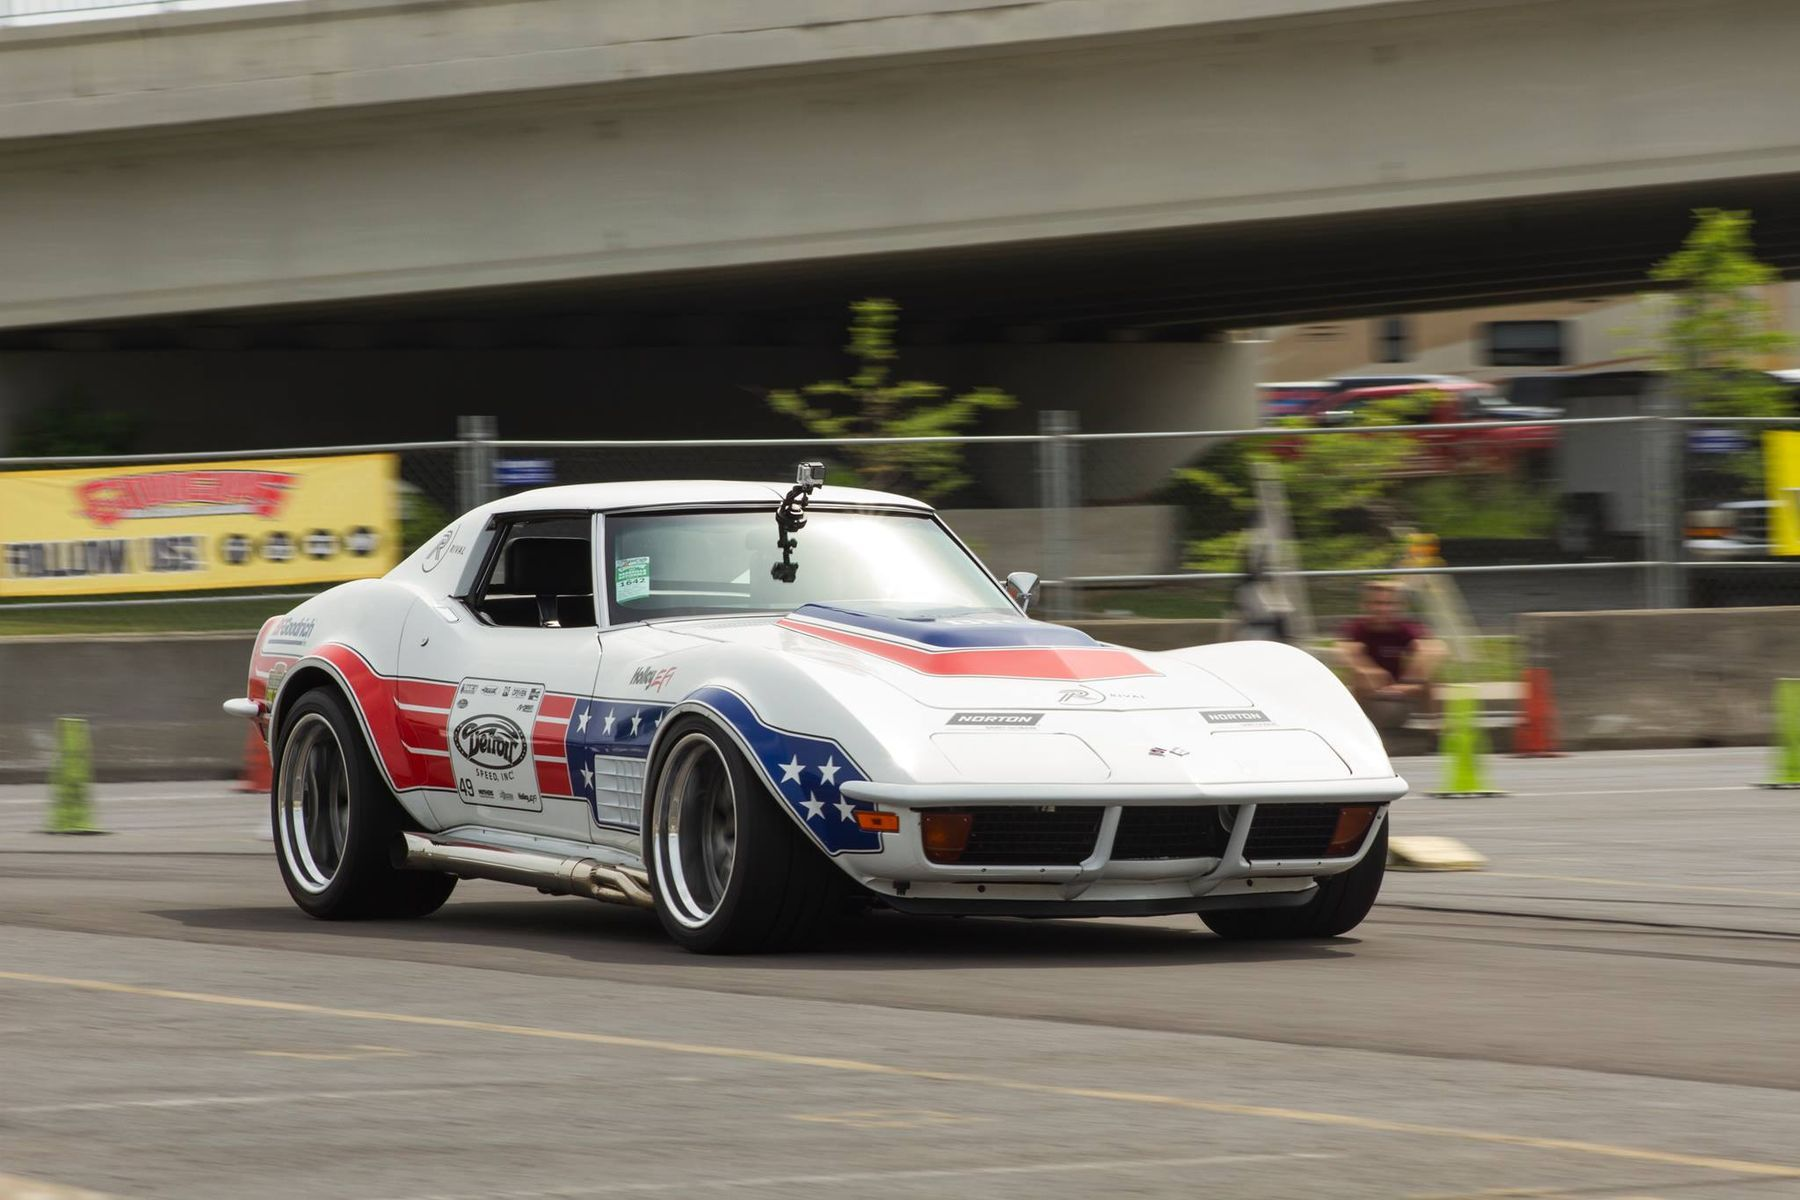 1972 Chevrolet Corvette Stingray | Ryan Mathews Wins Goodguys Nashville Nationals Autocross Shootout on Forgeline GA3 Wheels